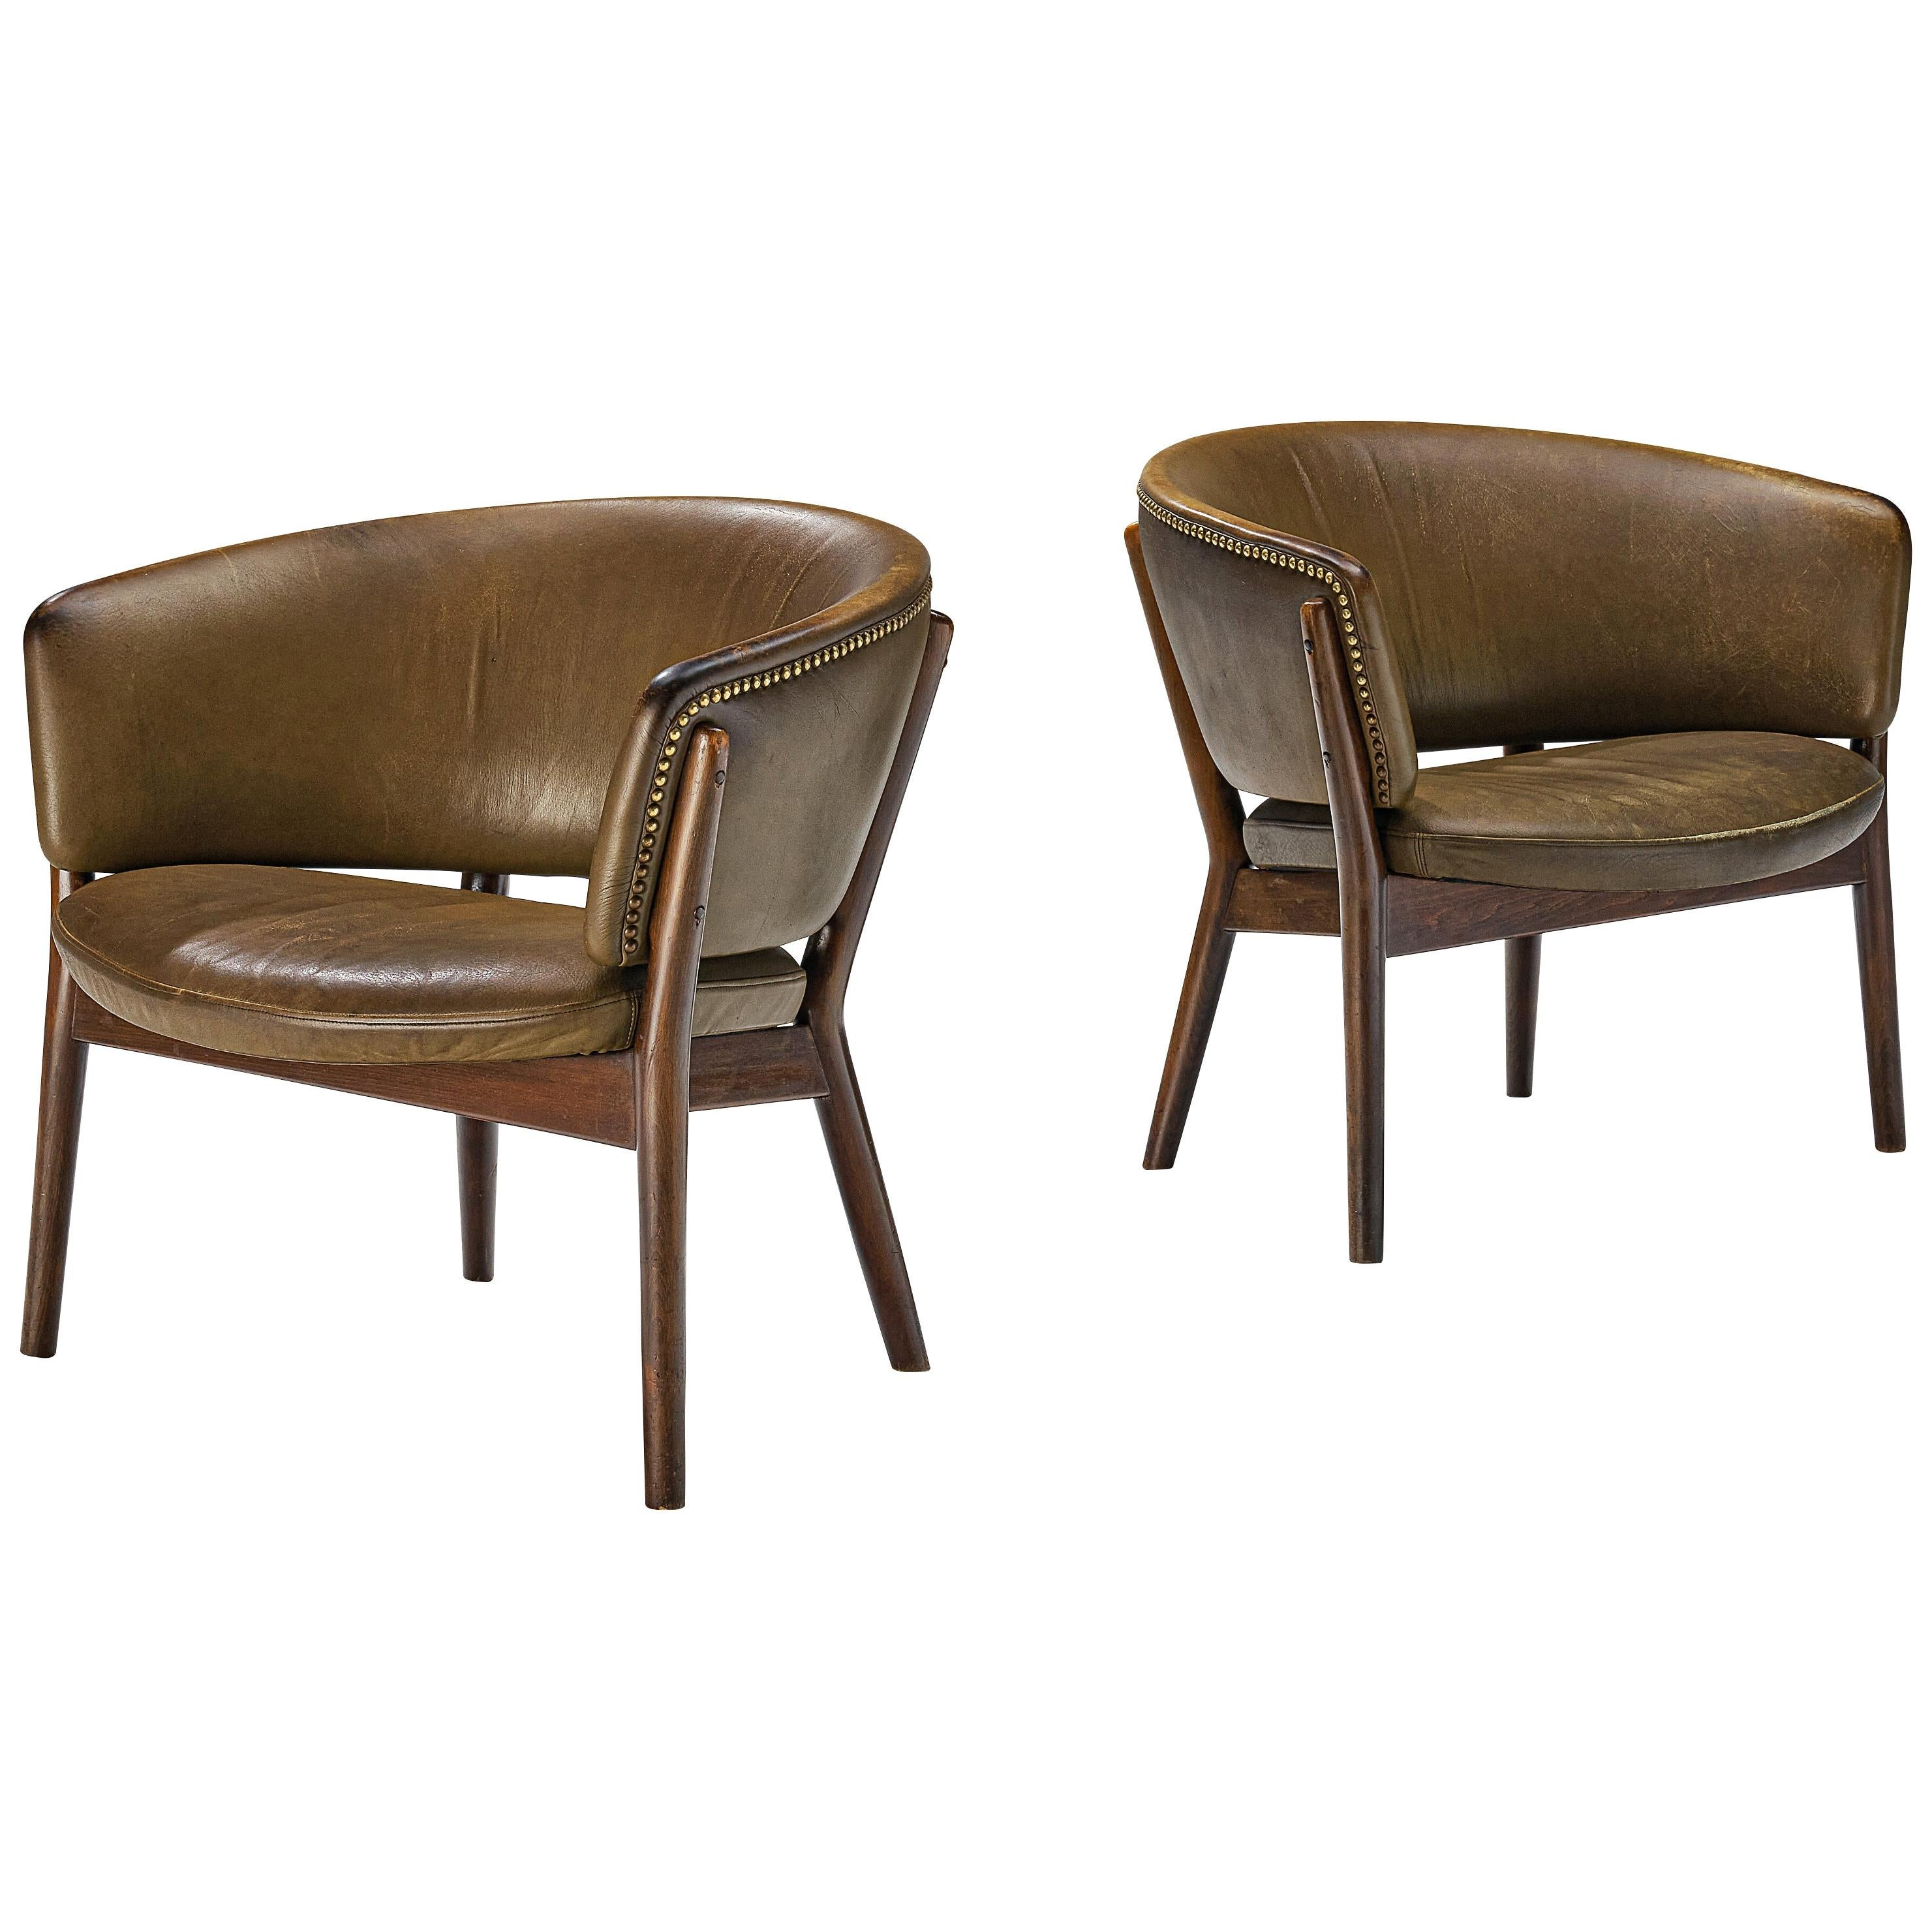 Nanna Ditzel Pair of Two Lounge Chairs Model 'ND83' in Original Green Leather